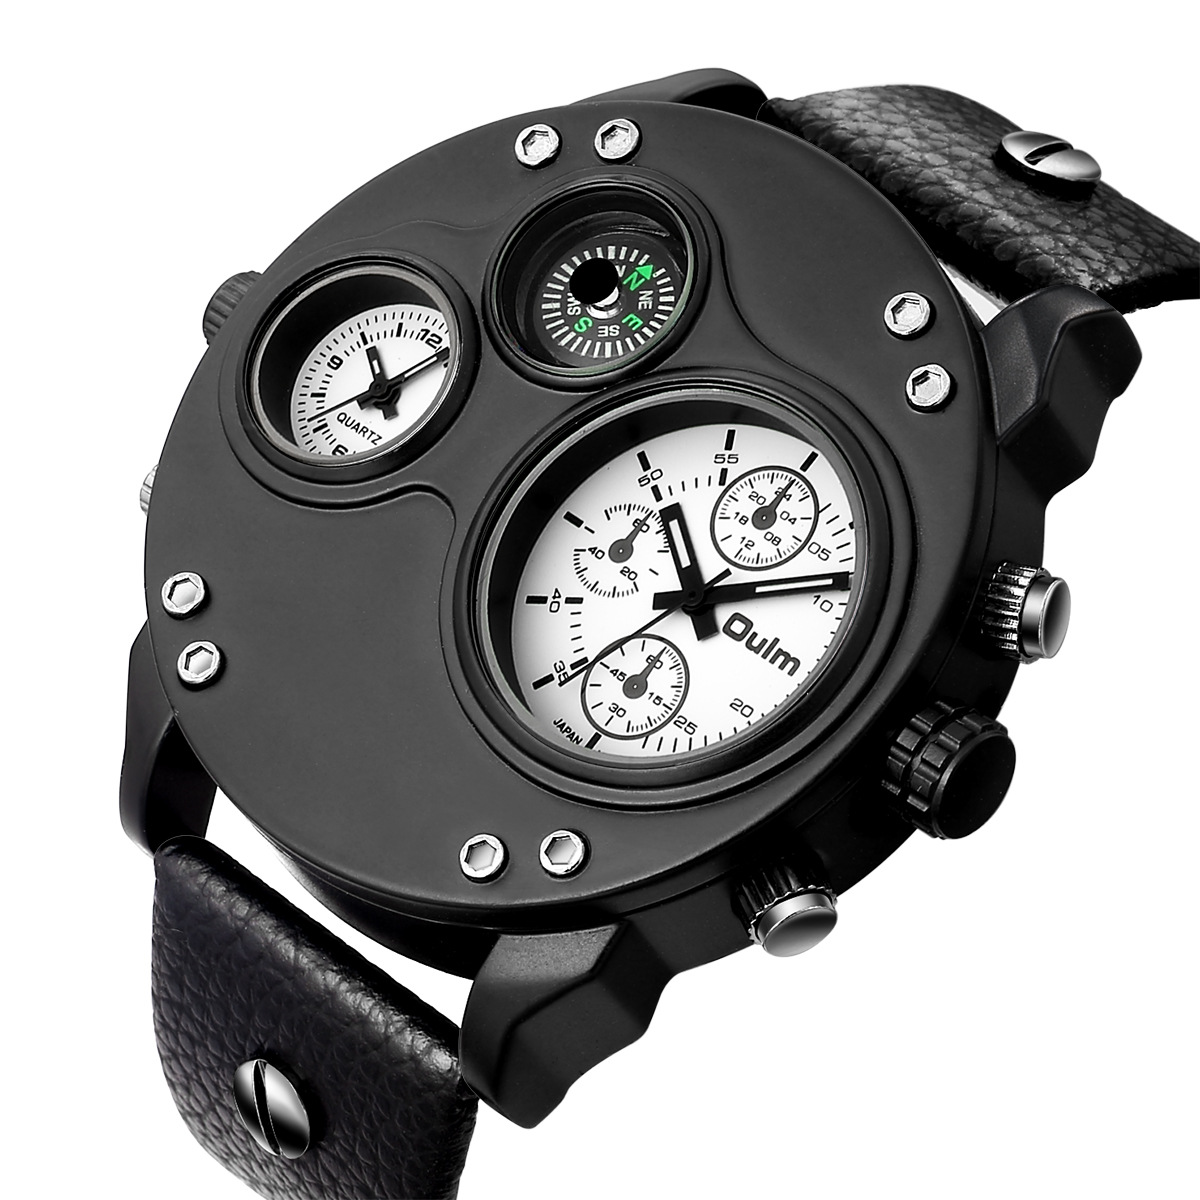 Oulm Brand New Style MEN'S Watch Multi-Time Zone Compass MEN'S Watch Leather Belt MEN'S Watch